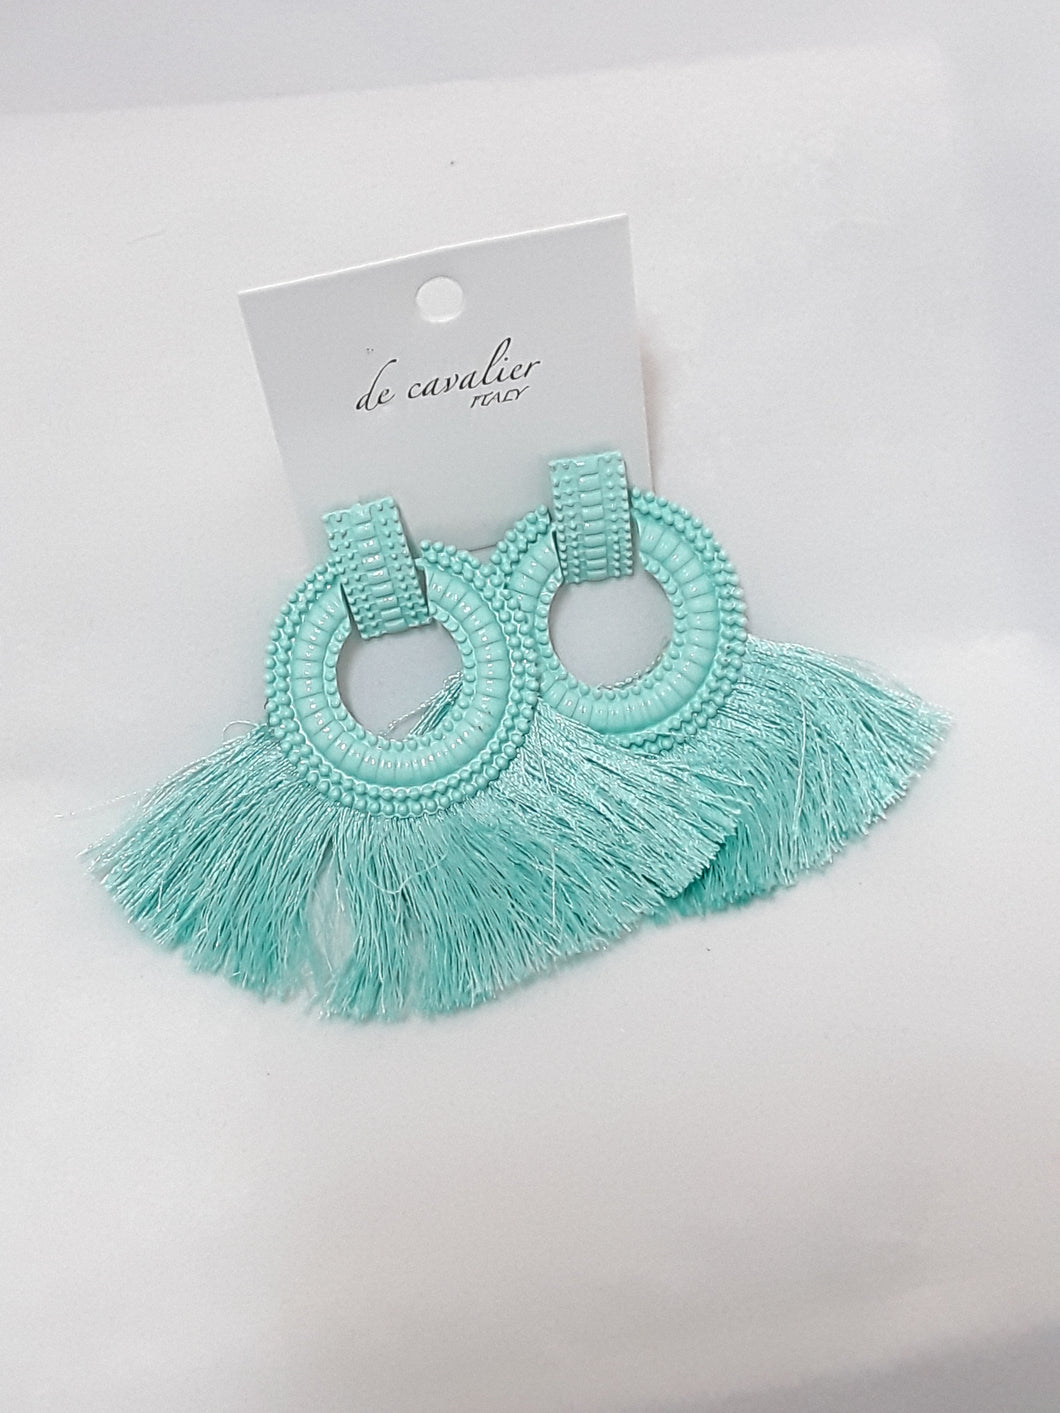 De Cavalier green circle tassle earrings 434